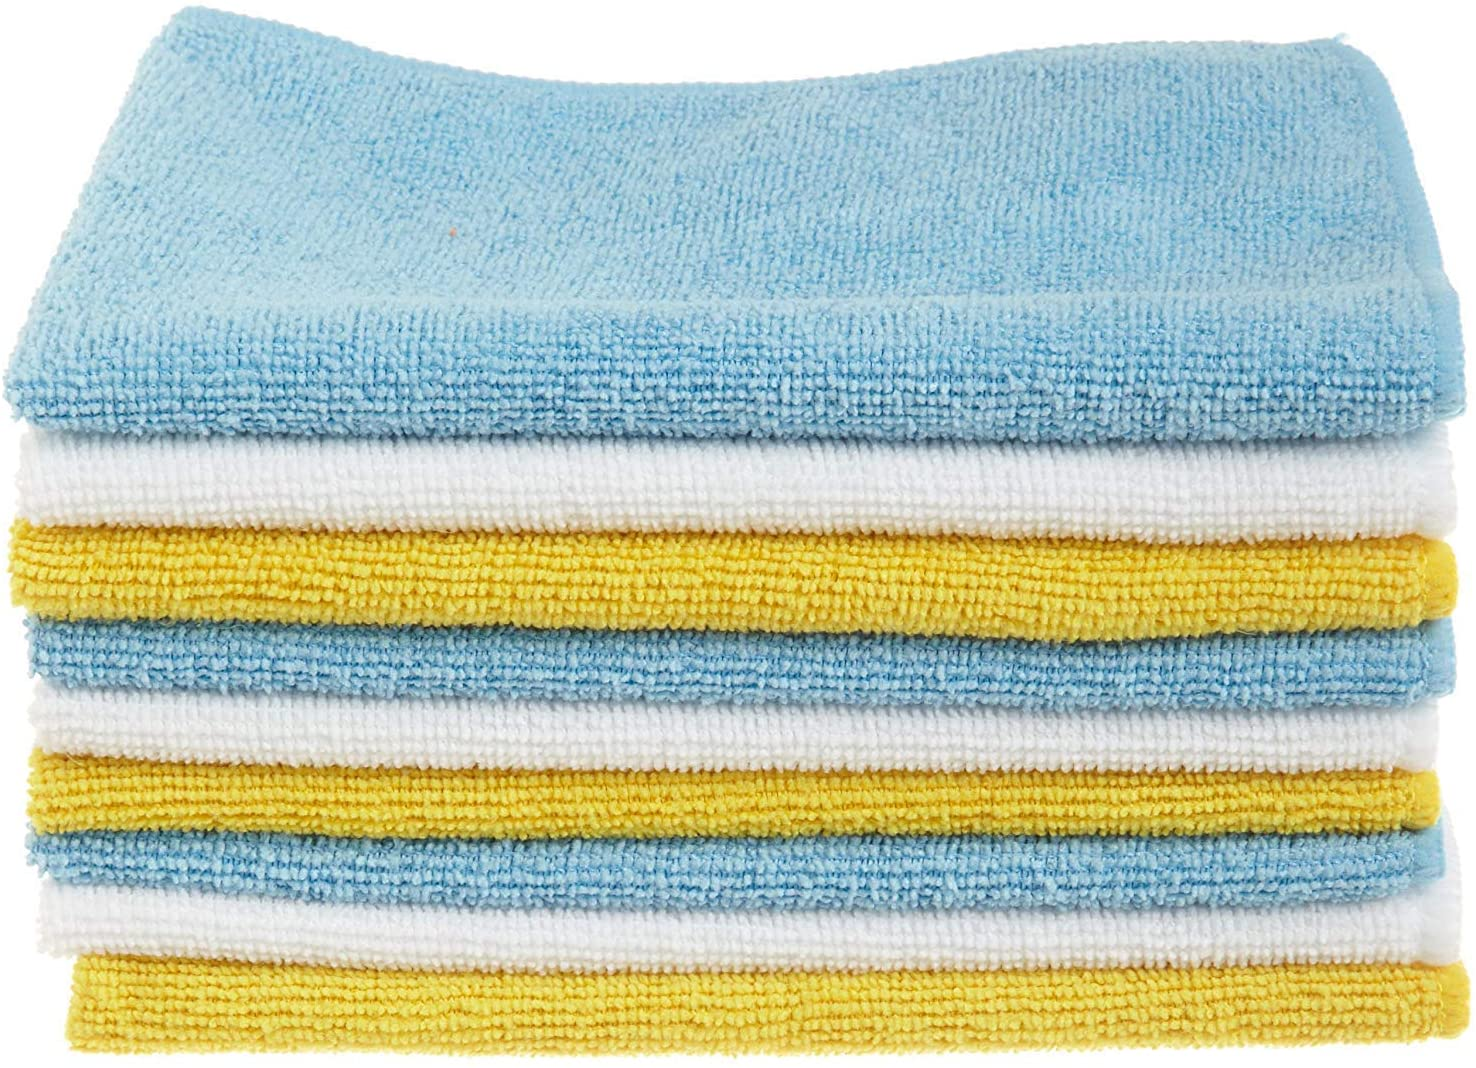 Amazon Basics Blue, White, and Yellow Microfiber Cleaning Cloths - Pack of 24